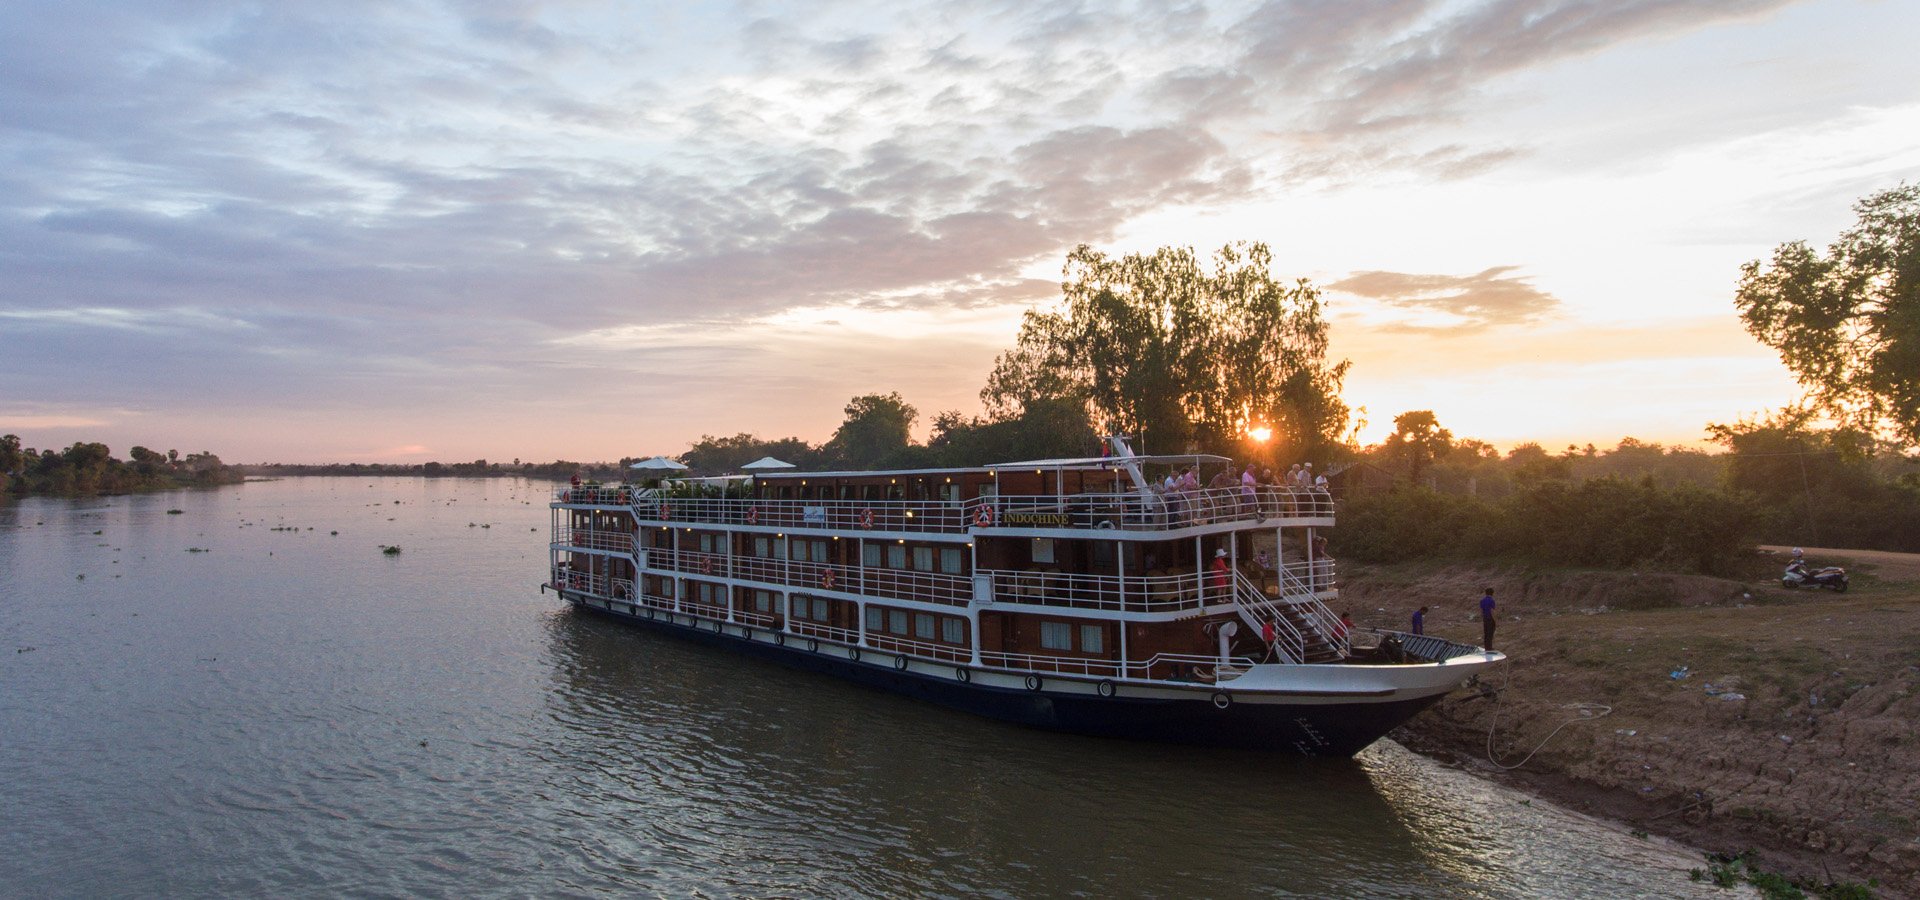 Embark on an Exciting River Cruise Adventure With CroisiEurope and Jetline